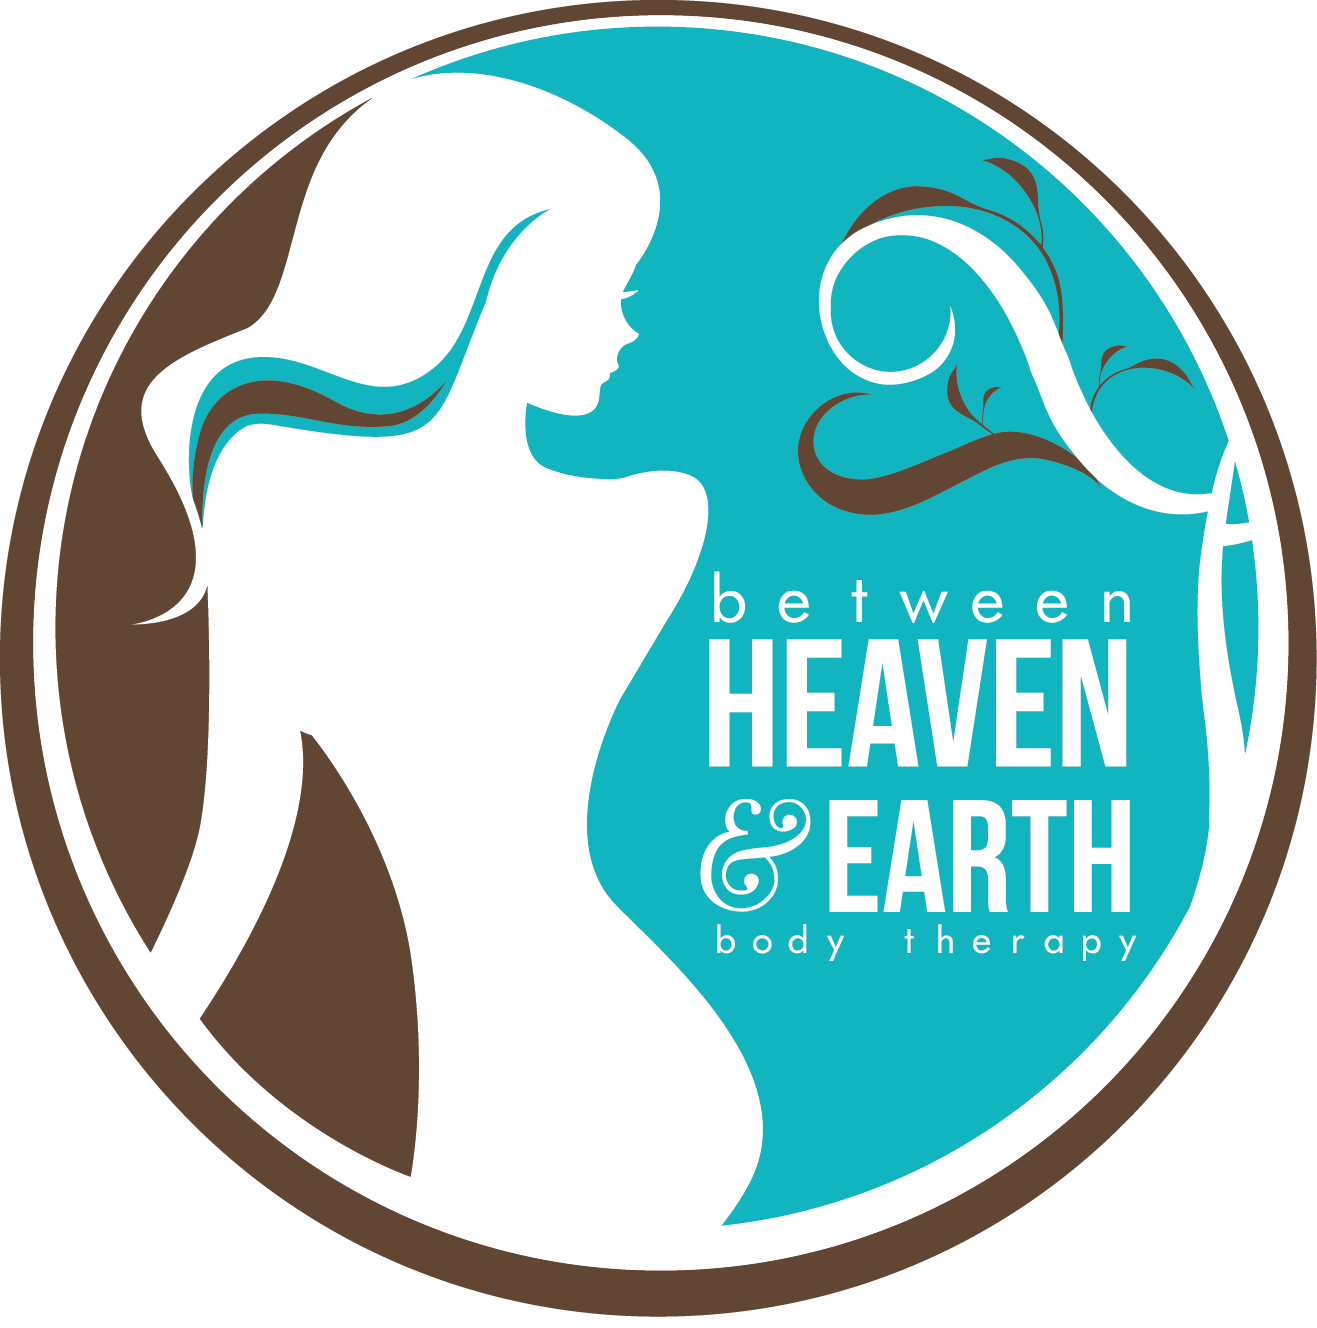 Between Heaven & Earth Body Therapy